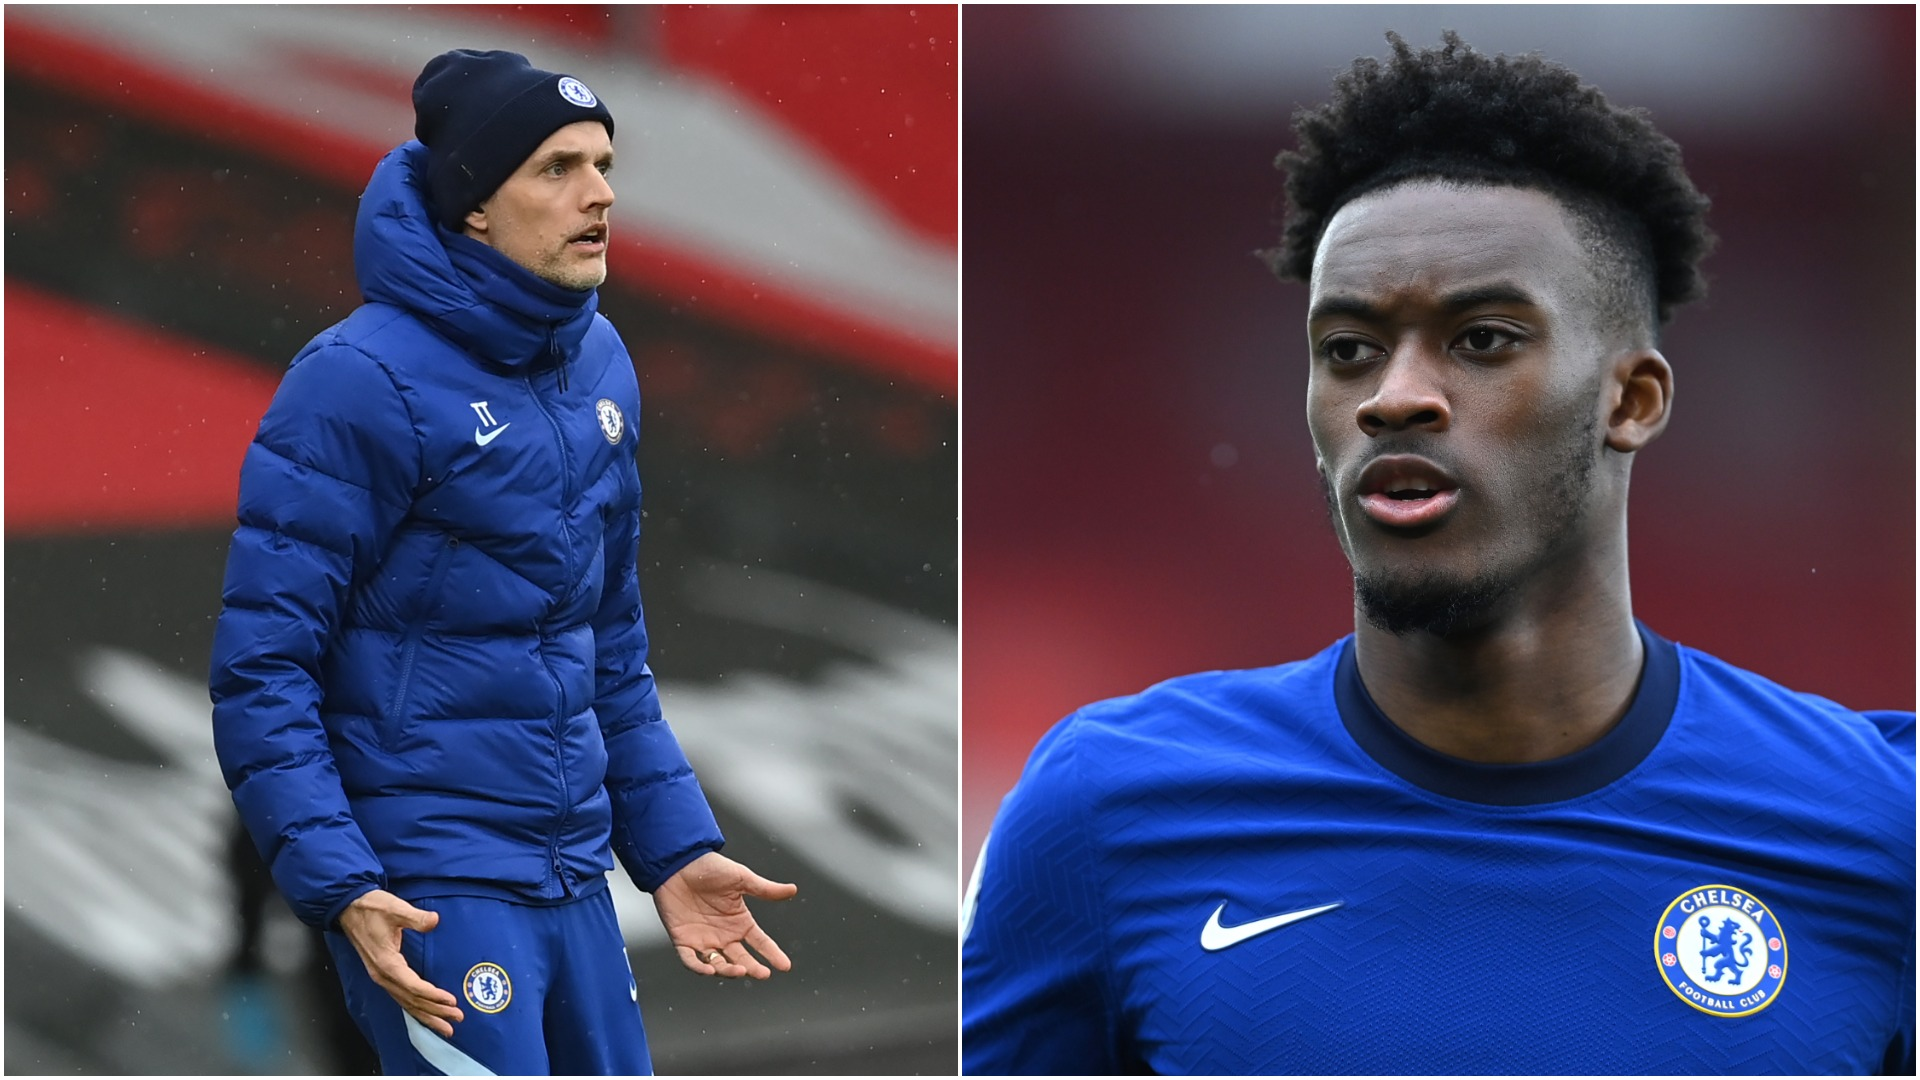 Tuchel says Hudson-Odoi must 'swallow it' and bounce back after Chelsea sub is hauled off